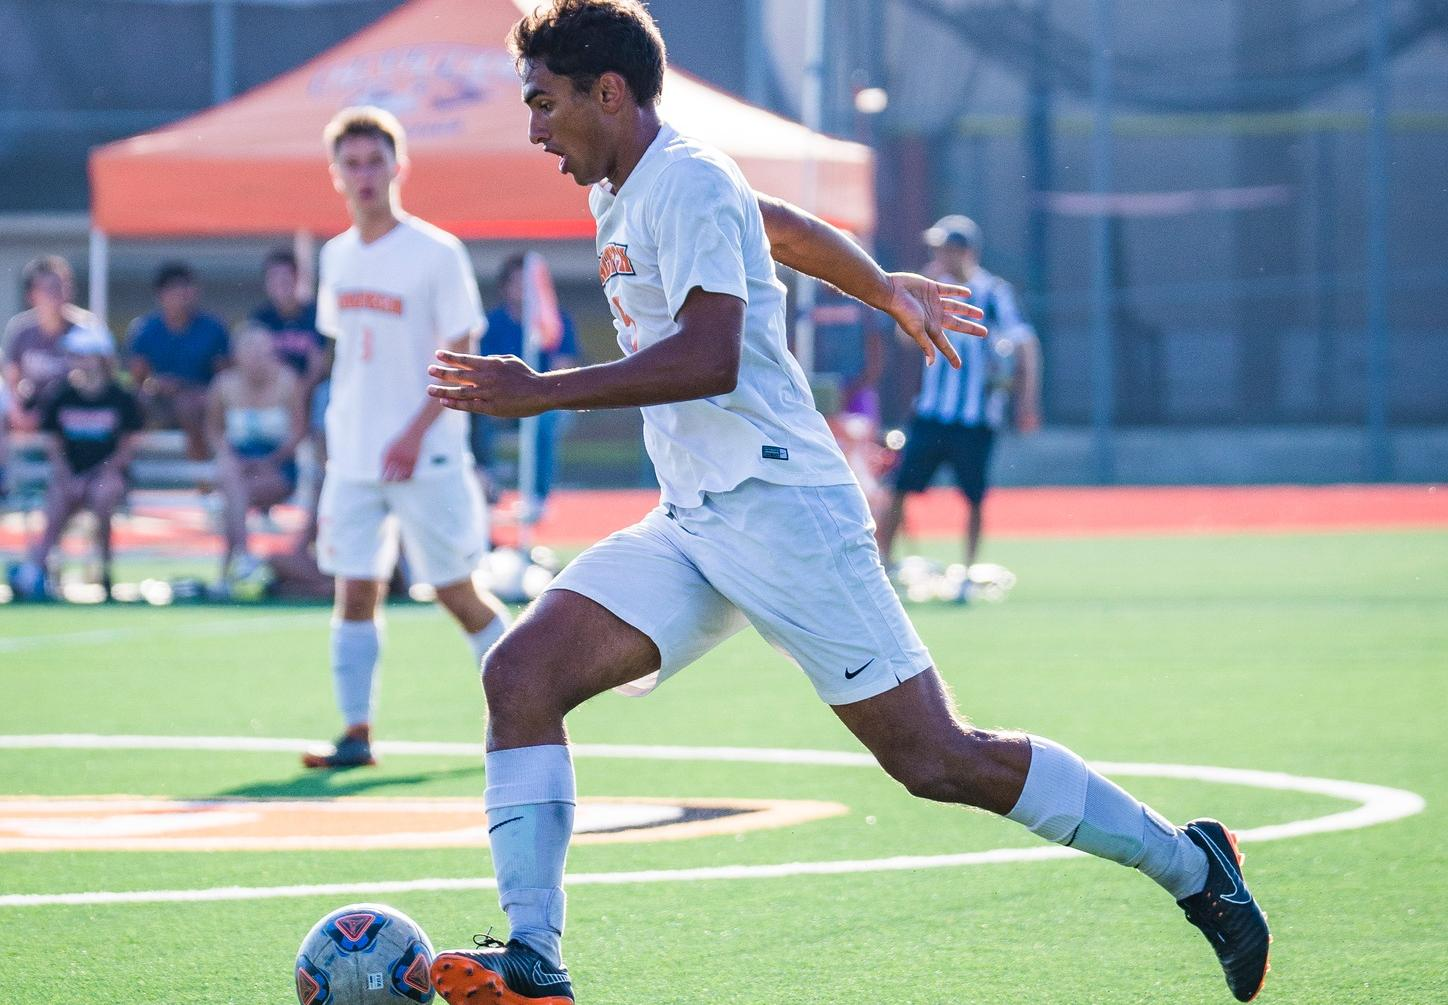 Johnson Gives Men's Soccer Chance to Rally at Cal Lutheran